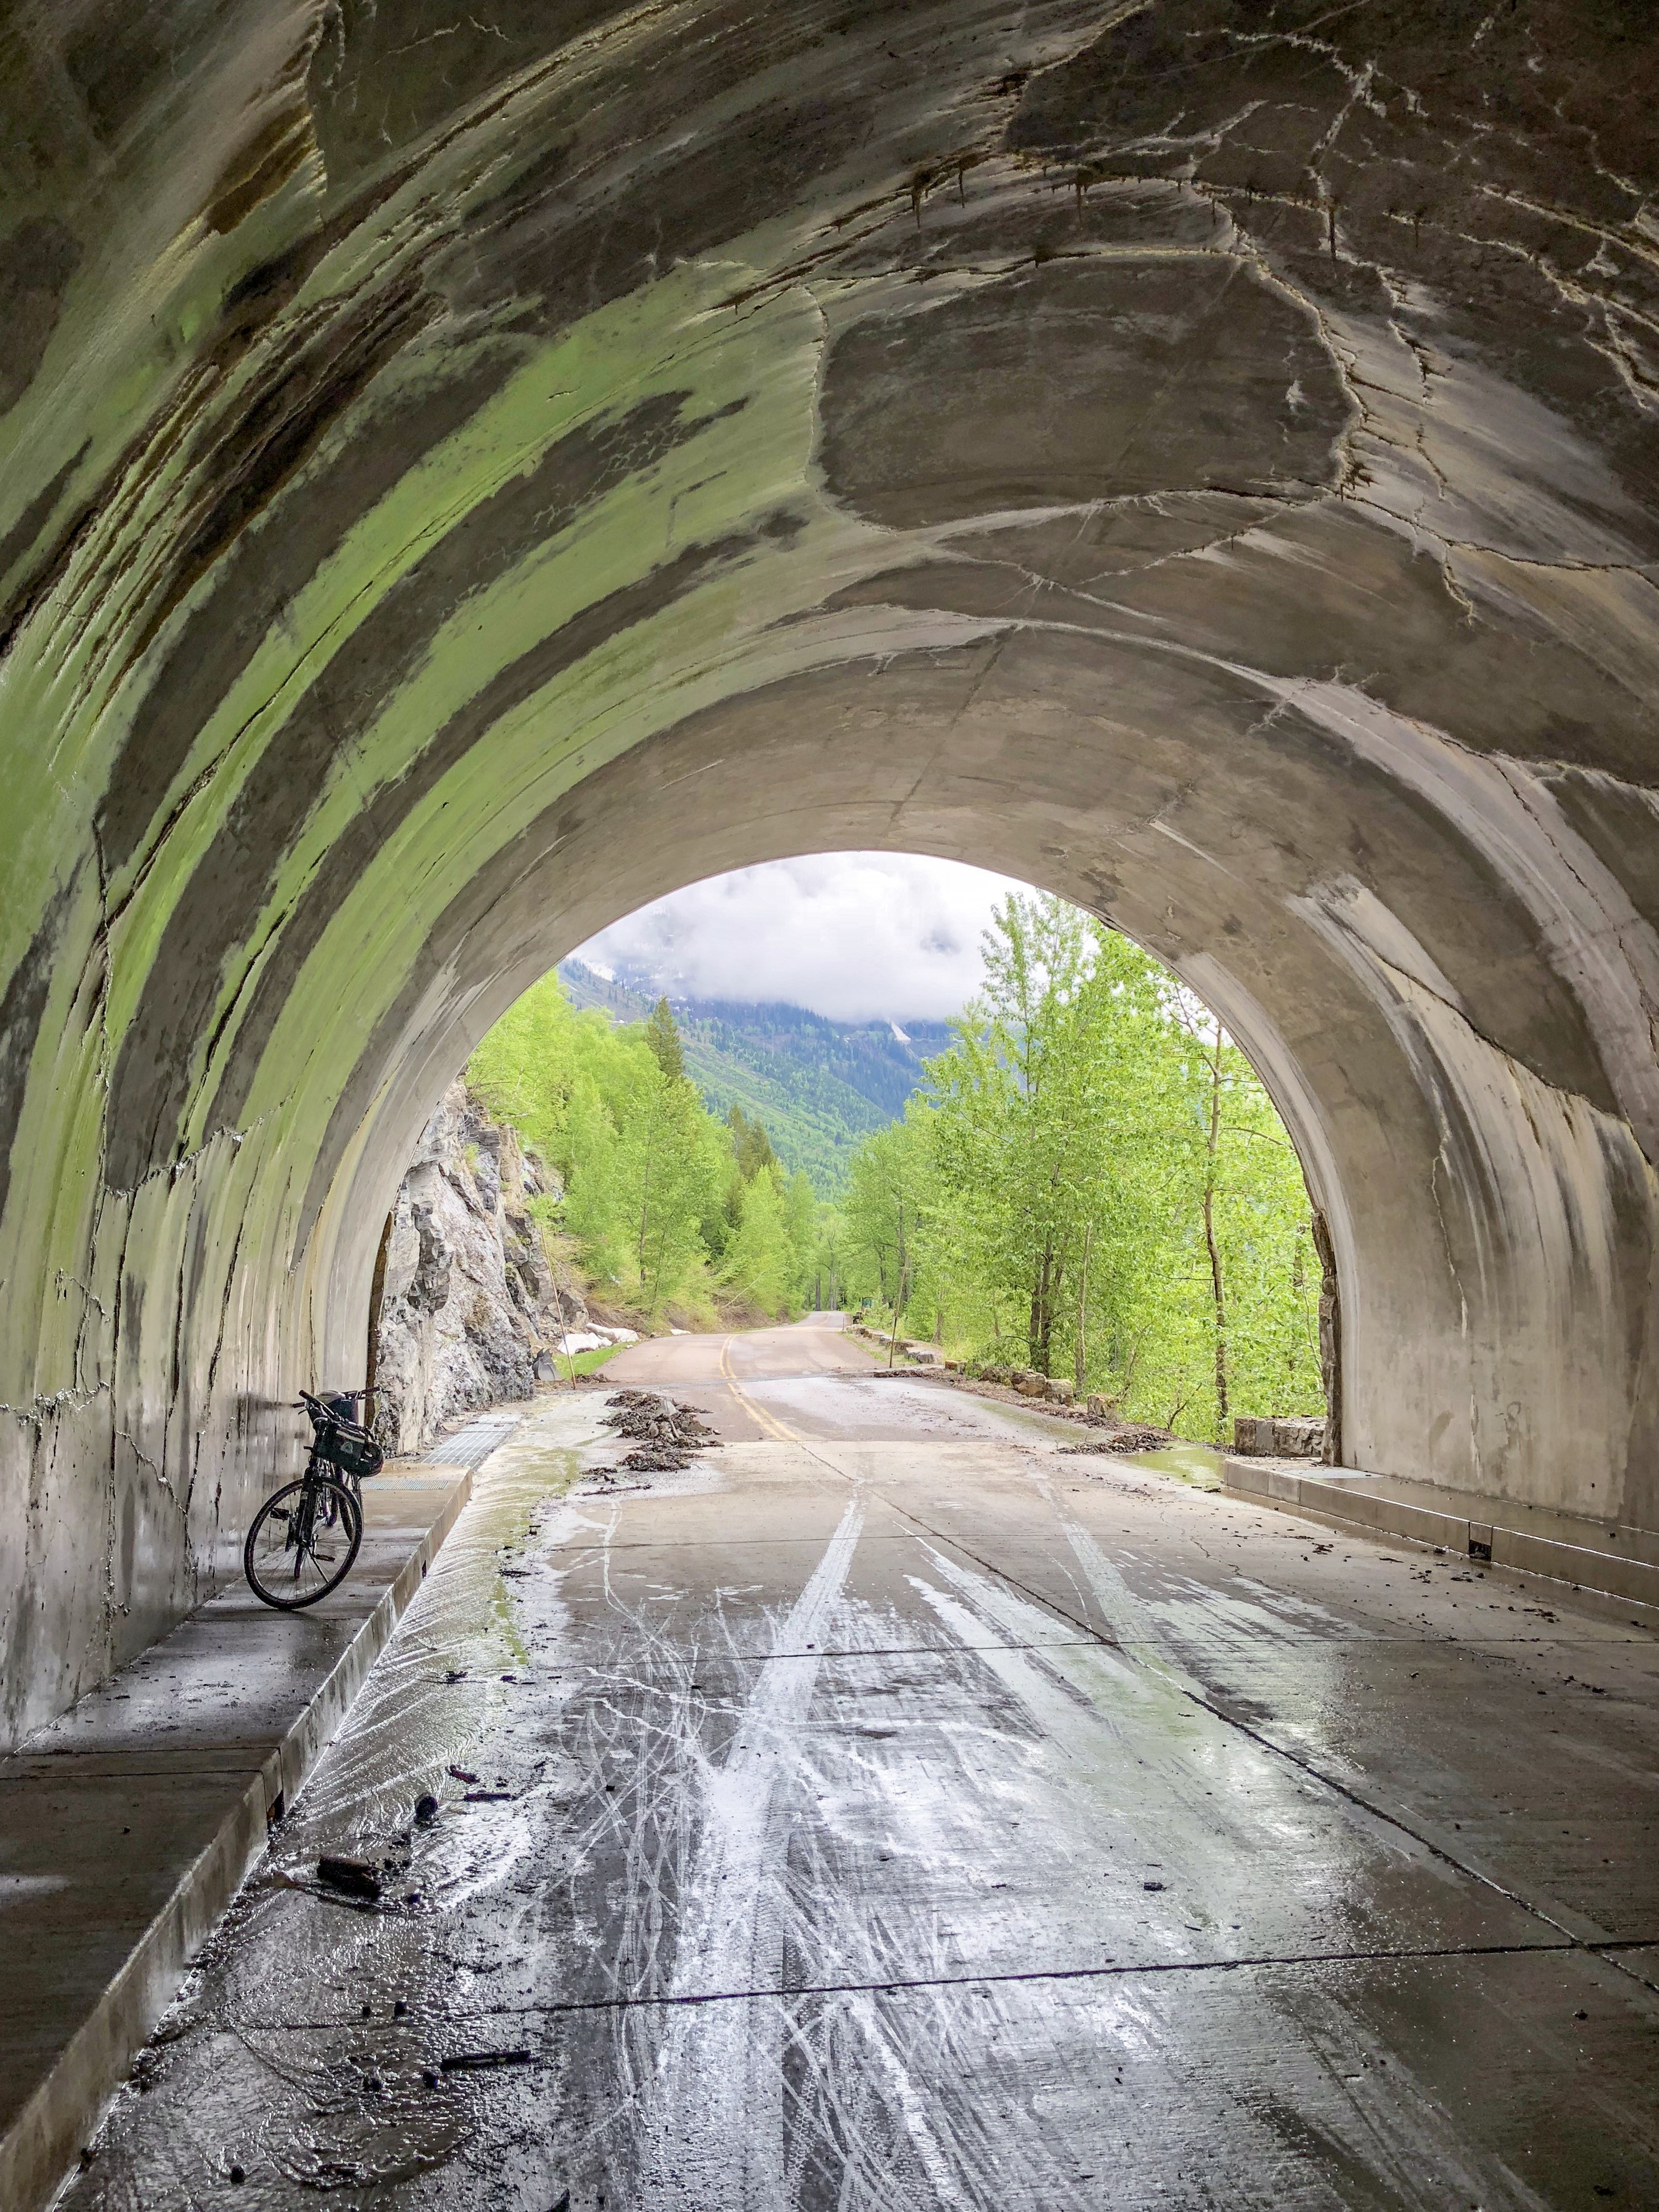 View of Going to the Sun Road in Glacier National Park from a tunnel with a bicycle